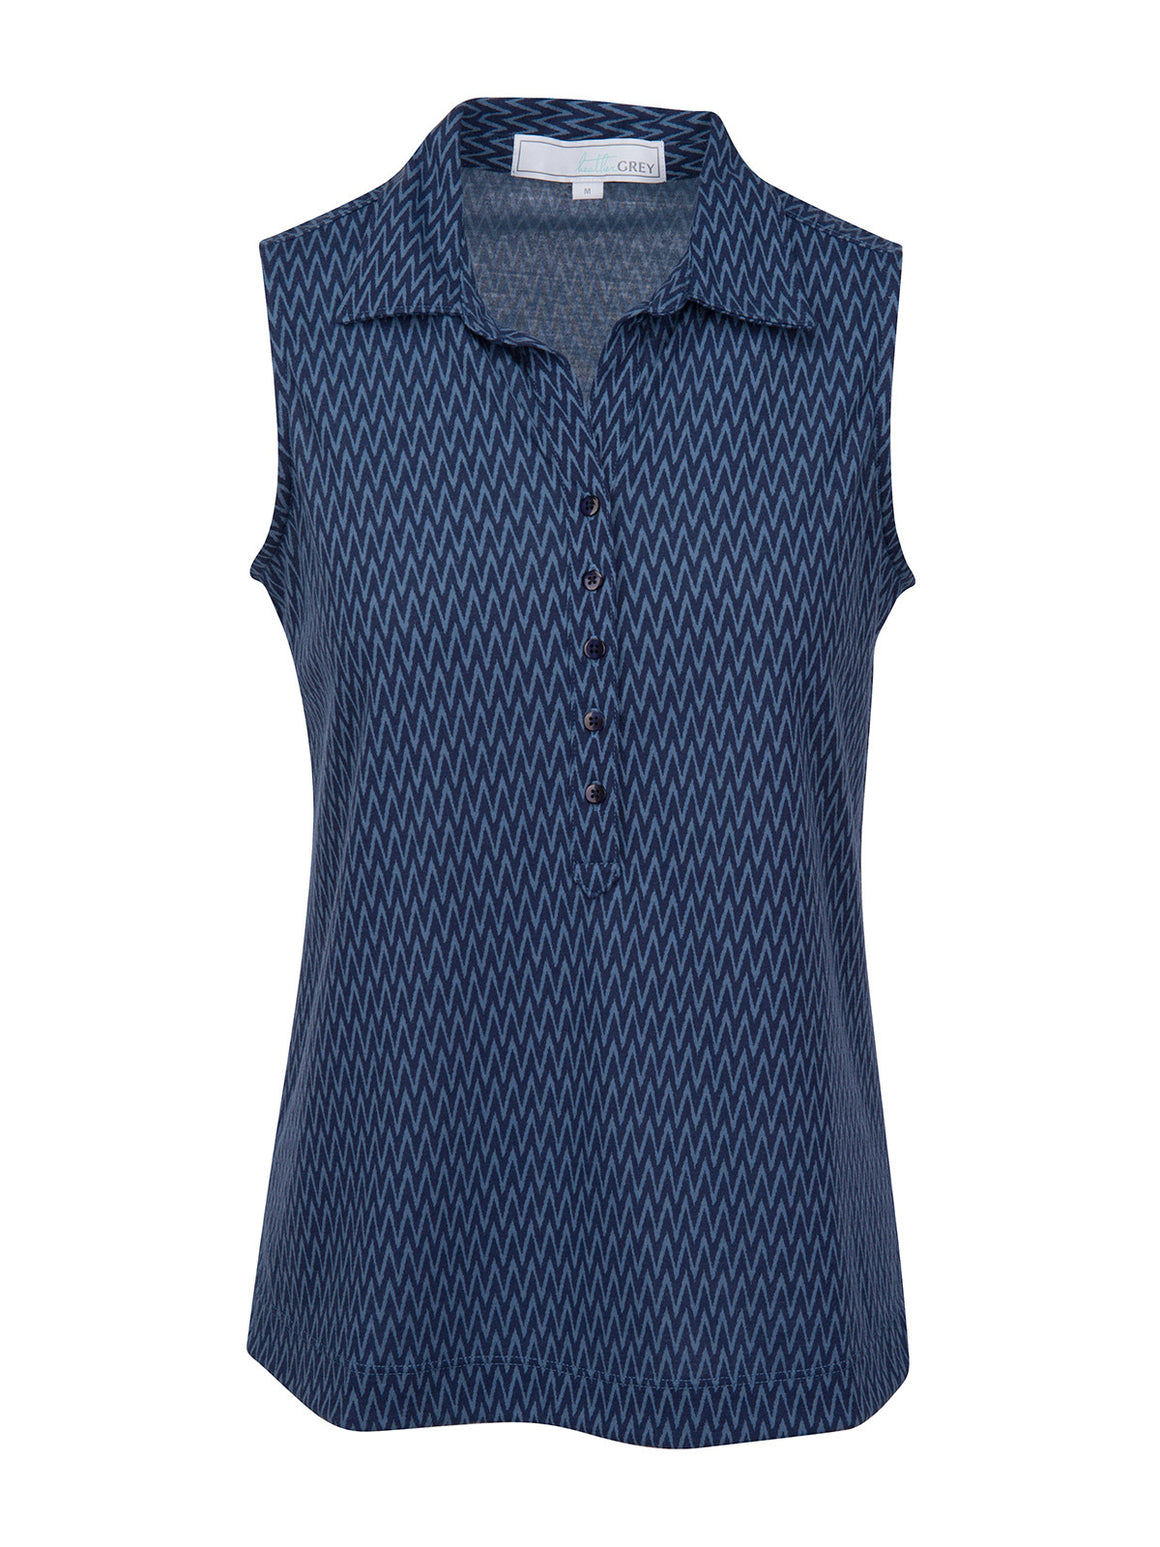 Julia Sleeveless - Flint Stone (Navy)